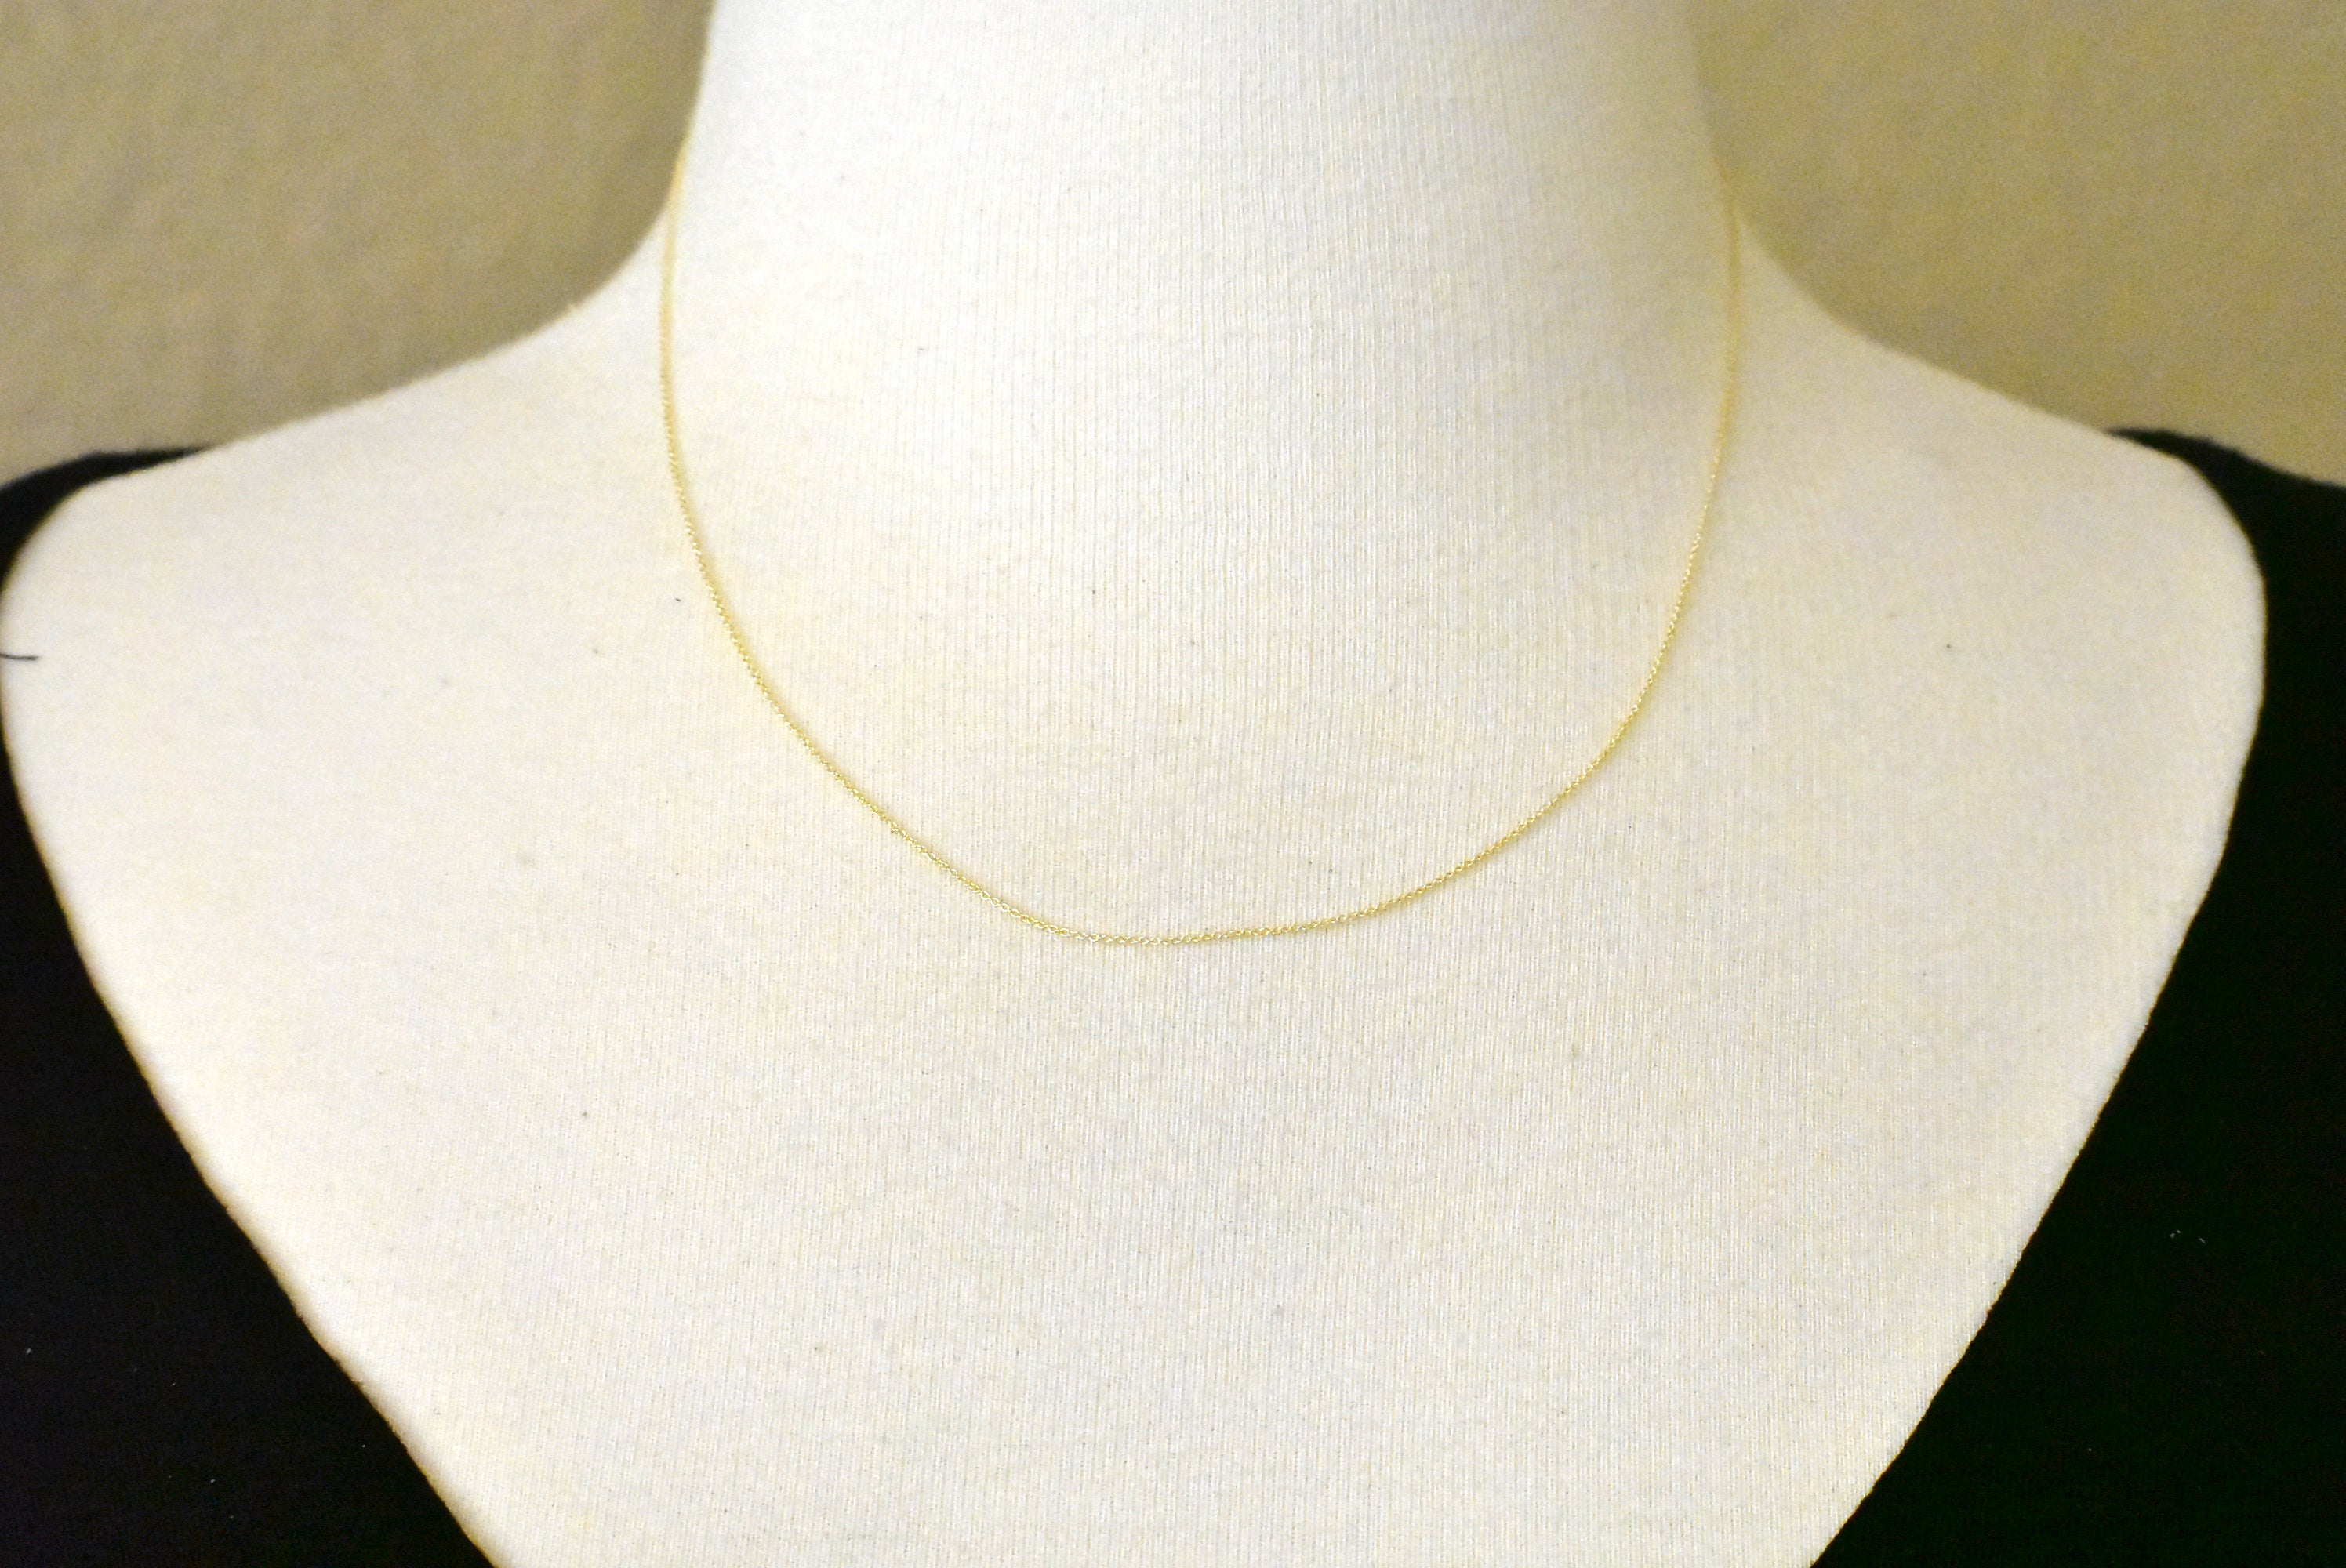 14k Yellow Gold 0.75mm Polished Cable Bracelet Anklet Choker Necklace Pendant Chain